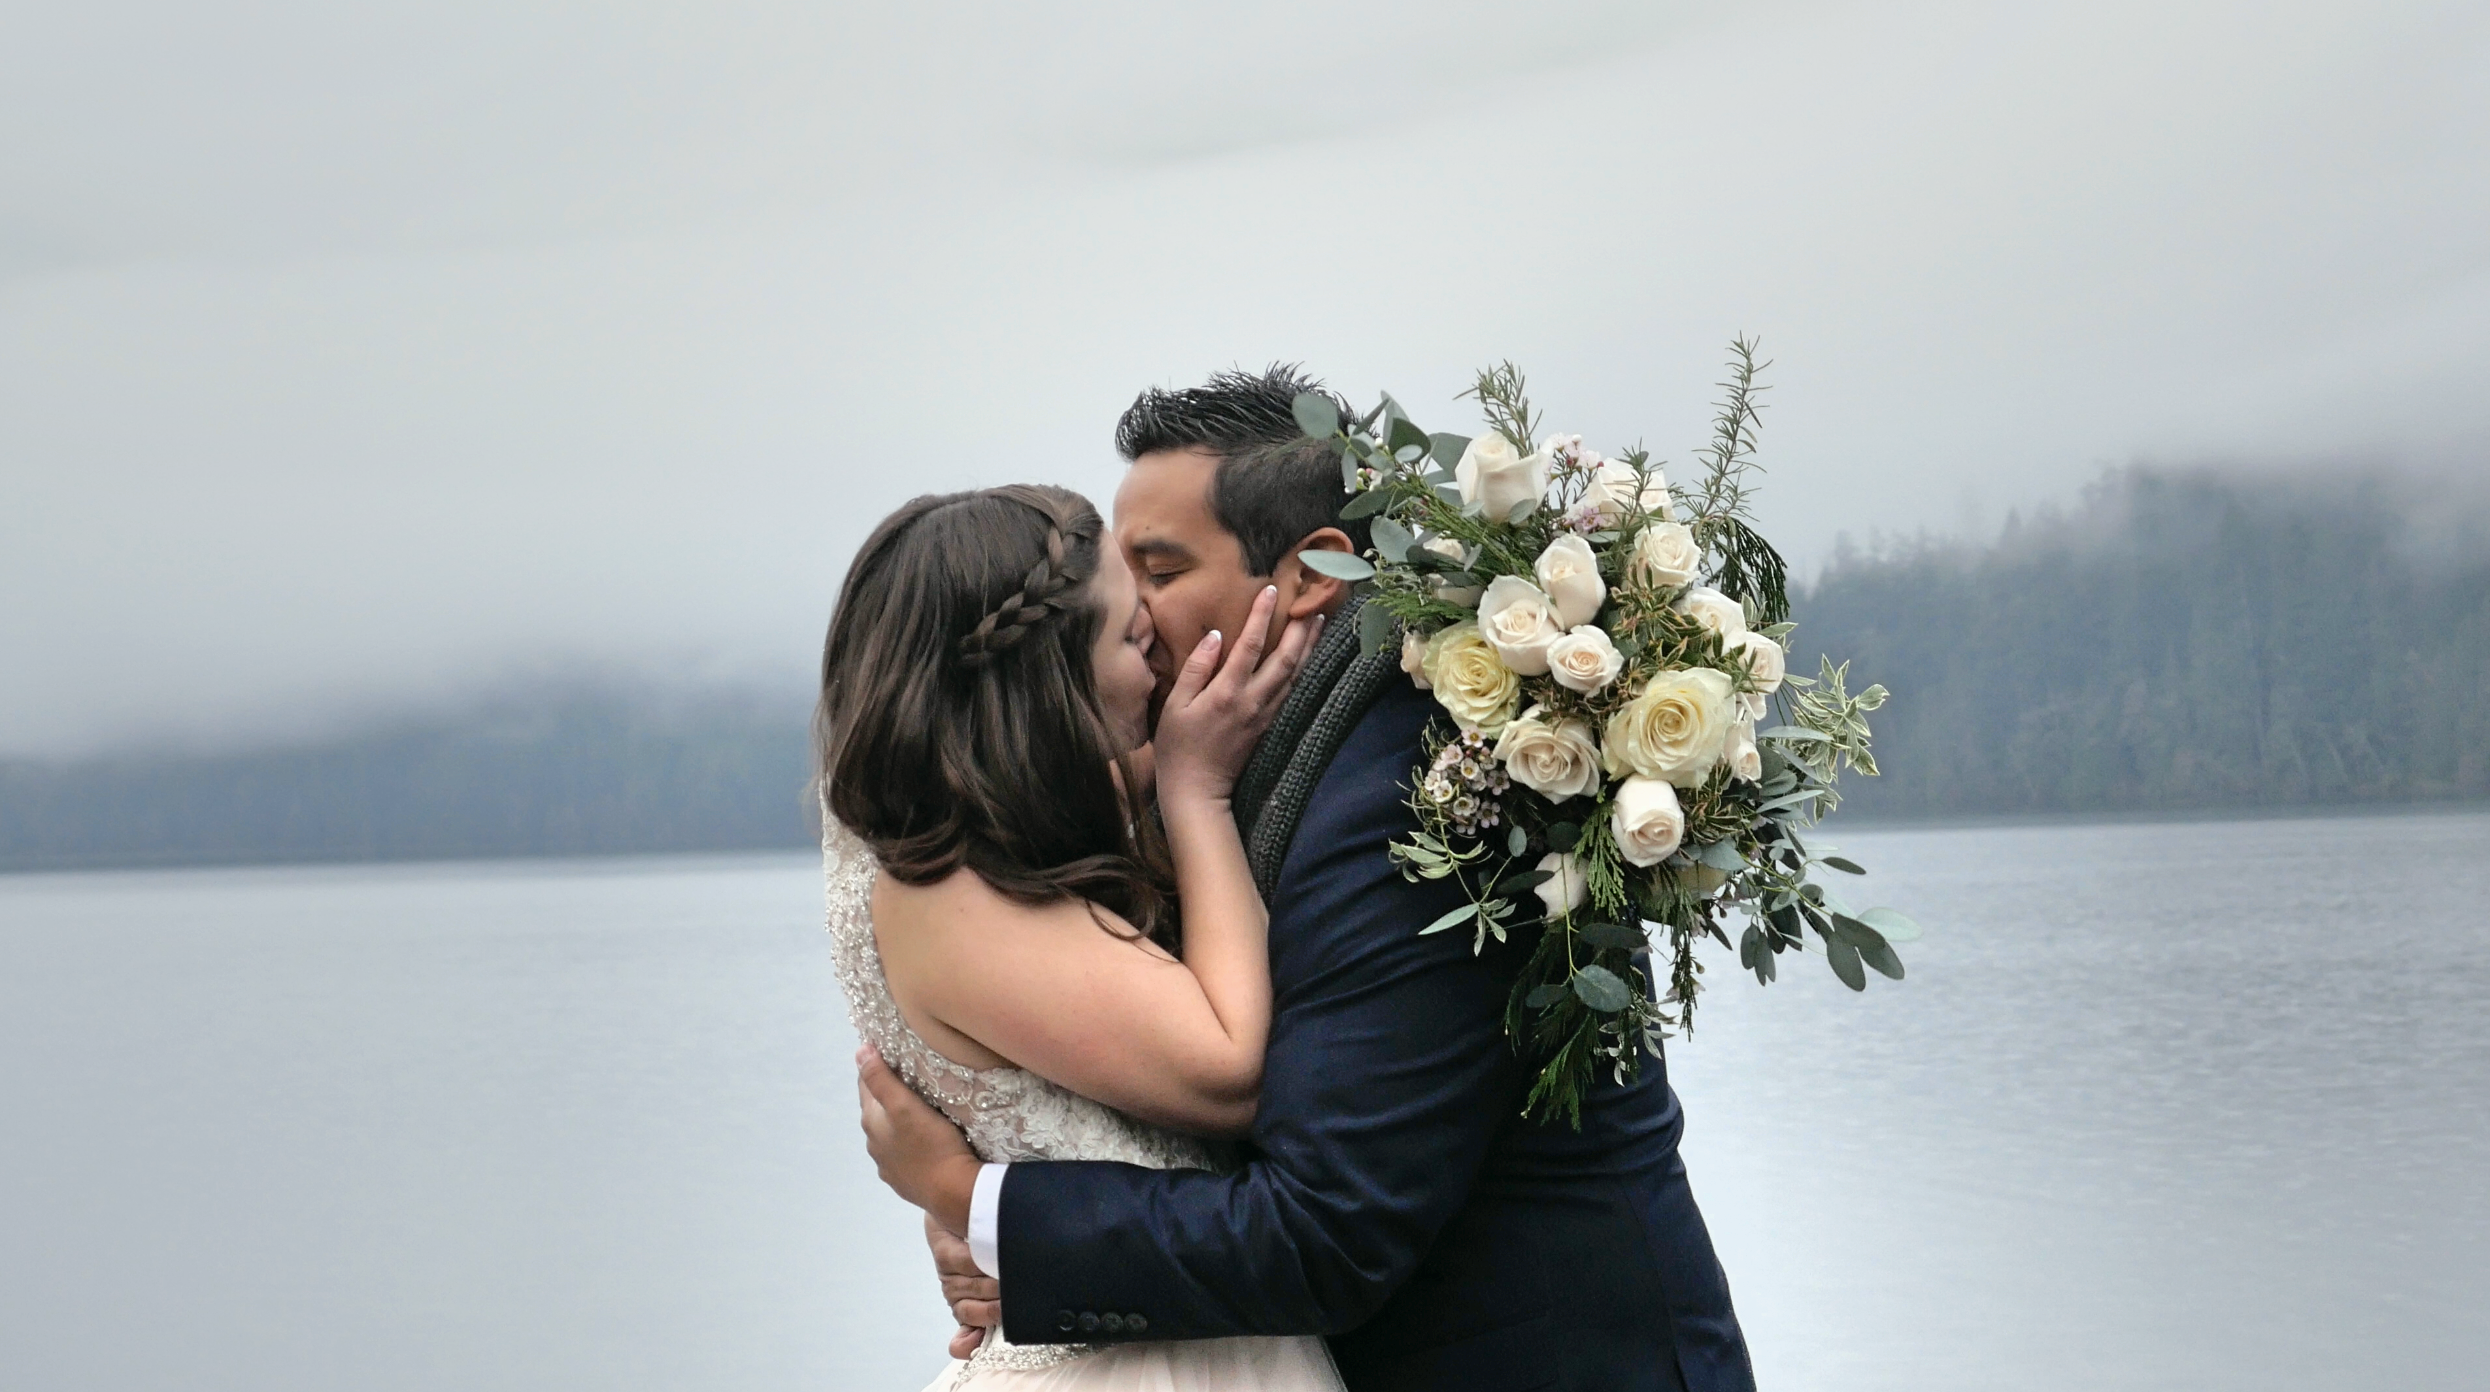 Vincent + Megan | Port Angeles, Washington | Lake Crescent, Port Angeles